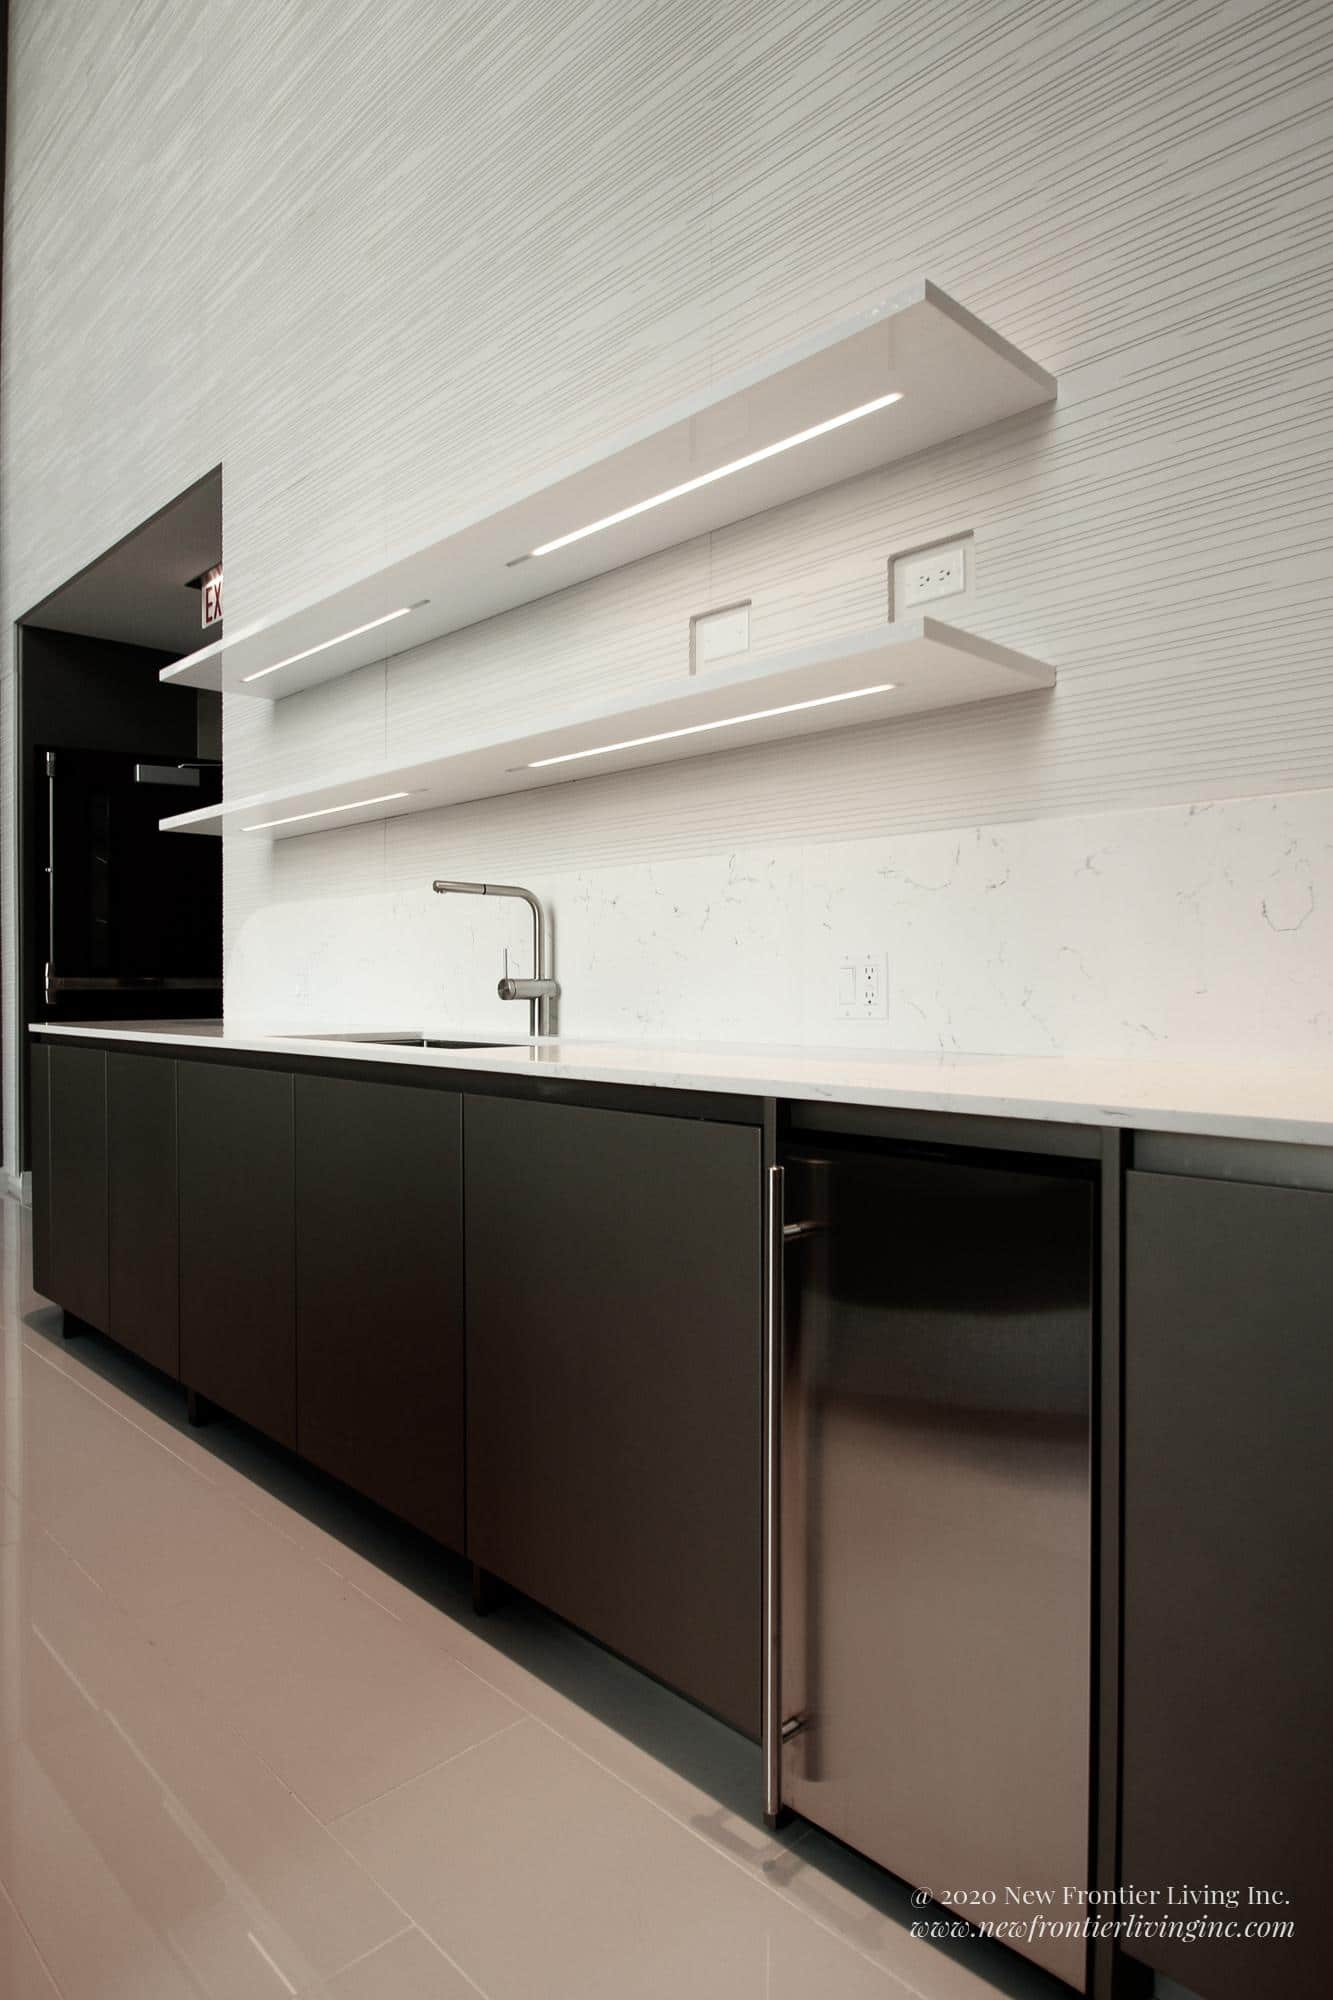 Black bottom cabinetry with white countertop, sink and dishwasher, two white shelves above